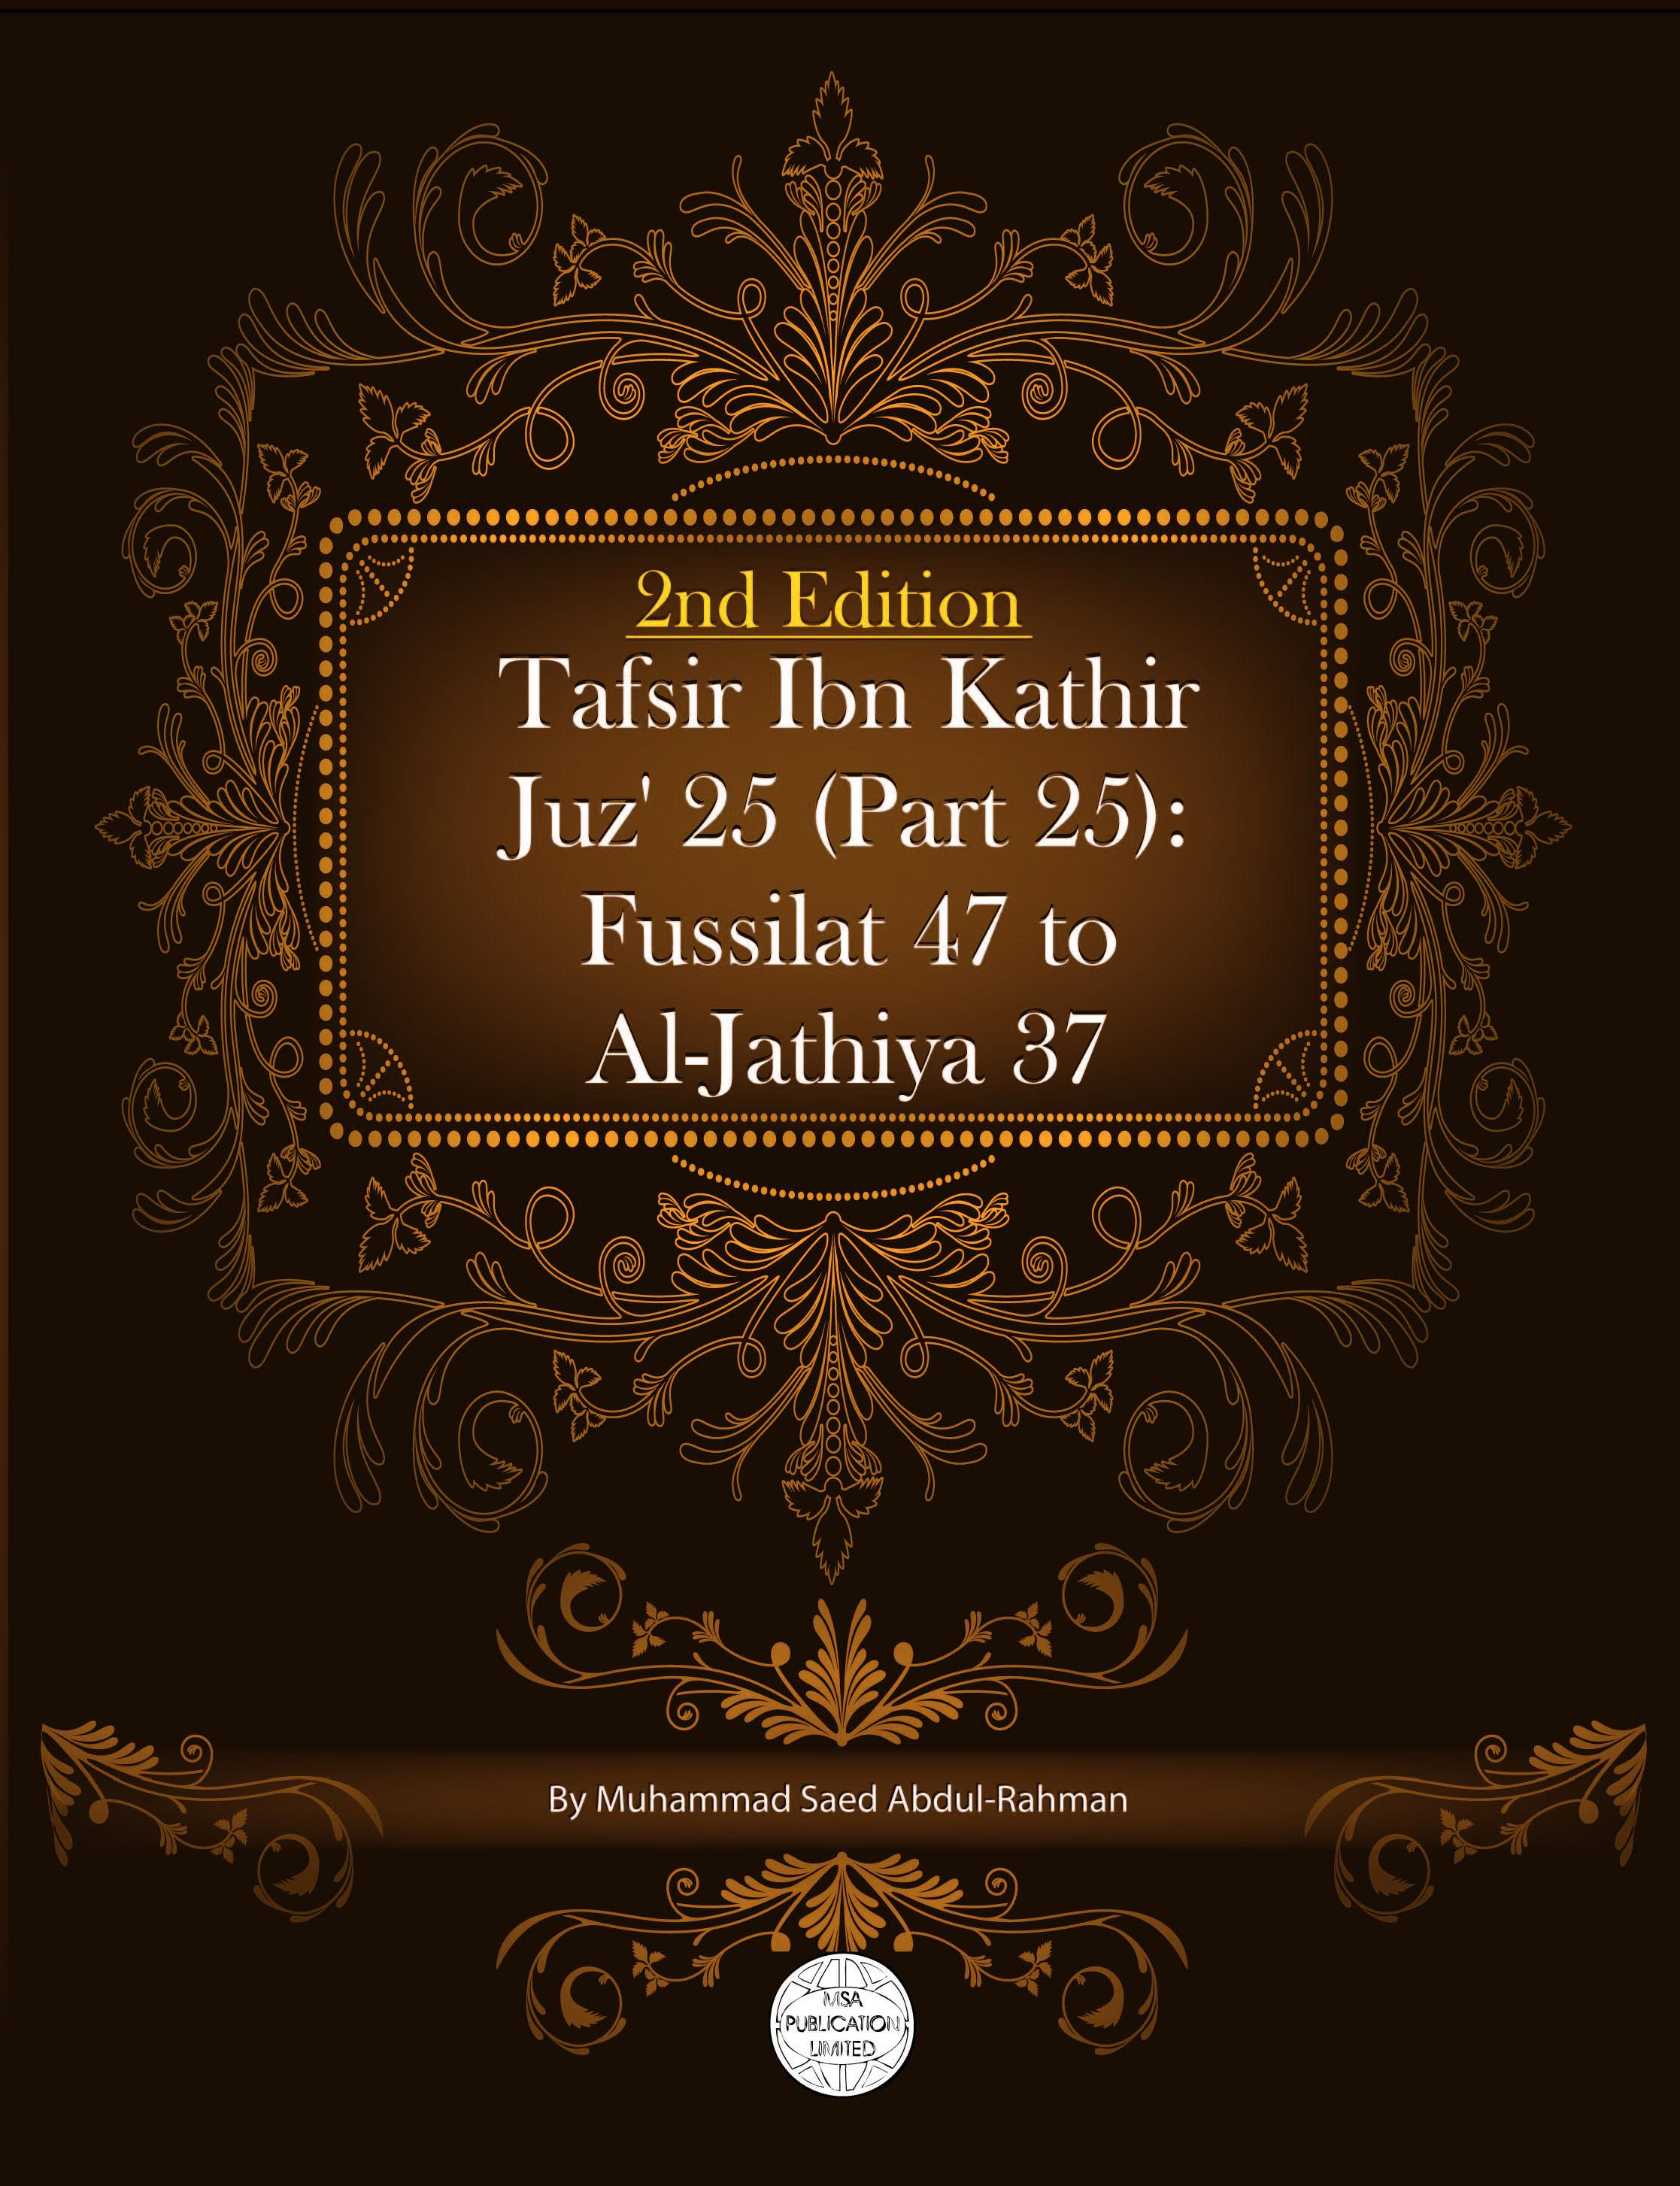 Tafsir Ibn Kathir Juz' 25 (Part 25): Fussilat 47 To Al-Jathiya 37 2nd Edition